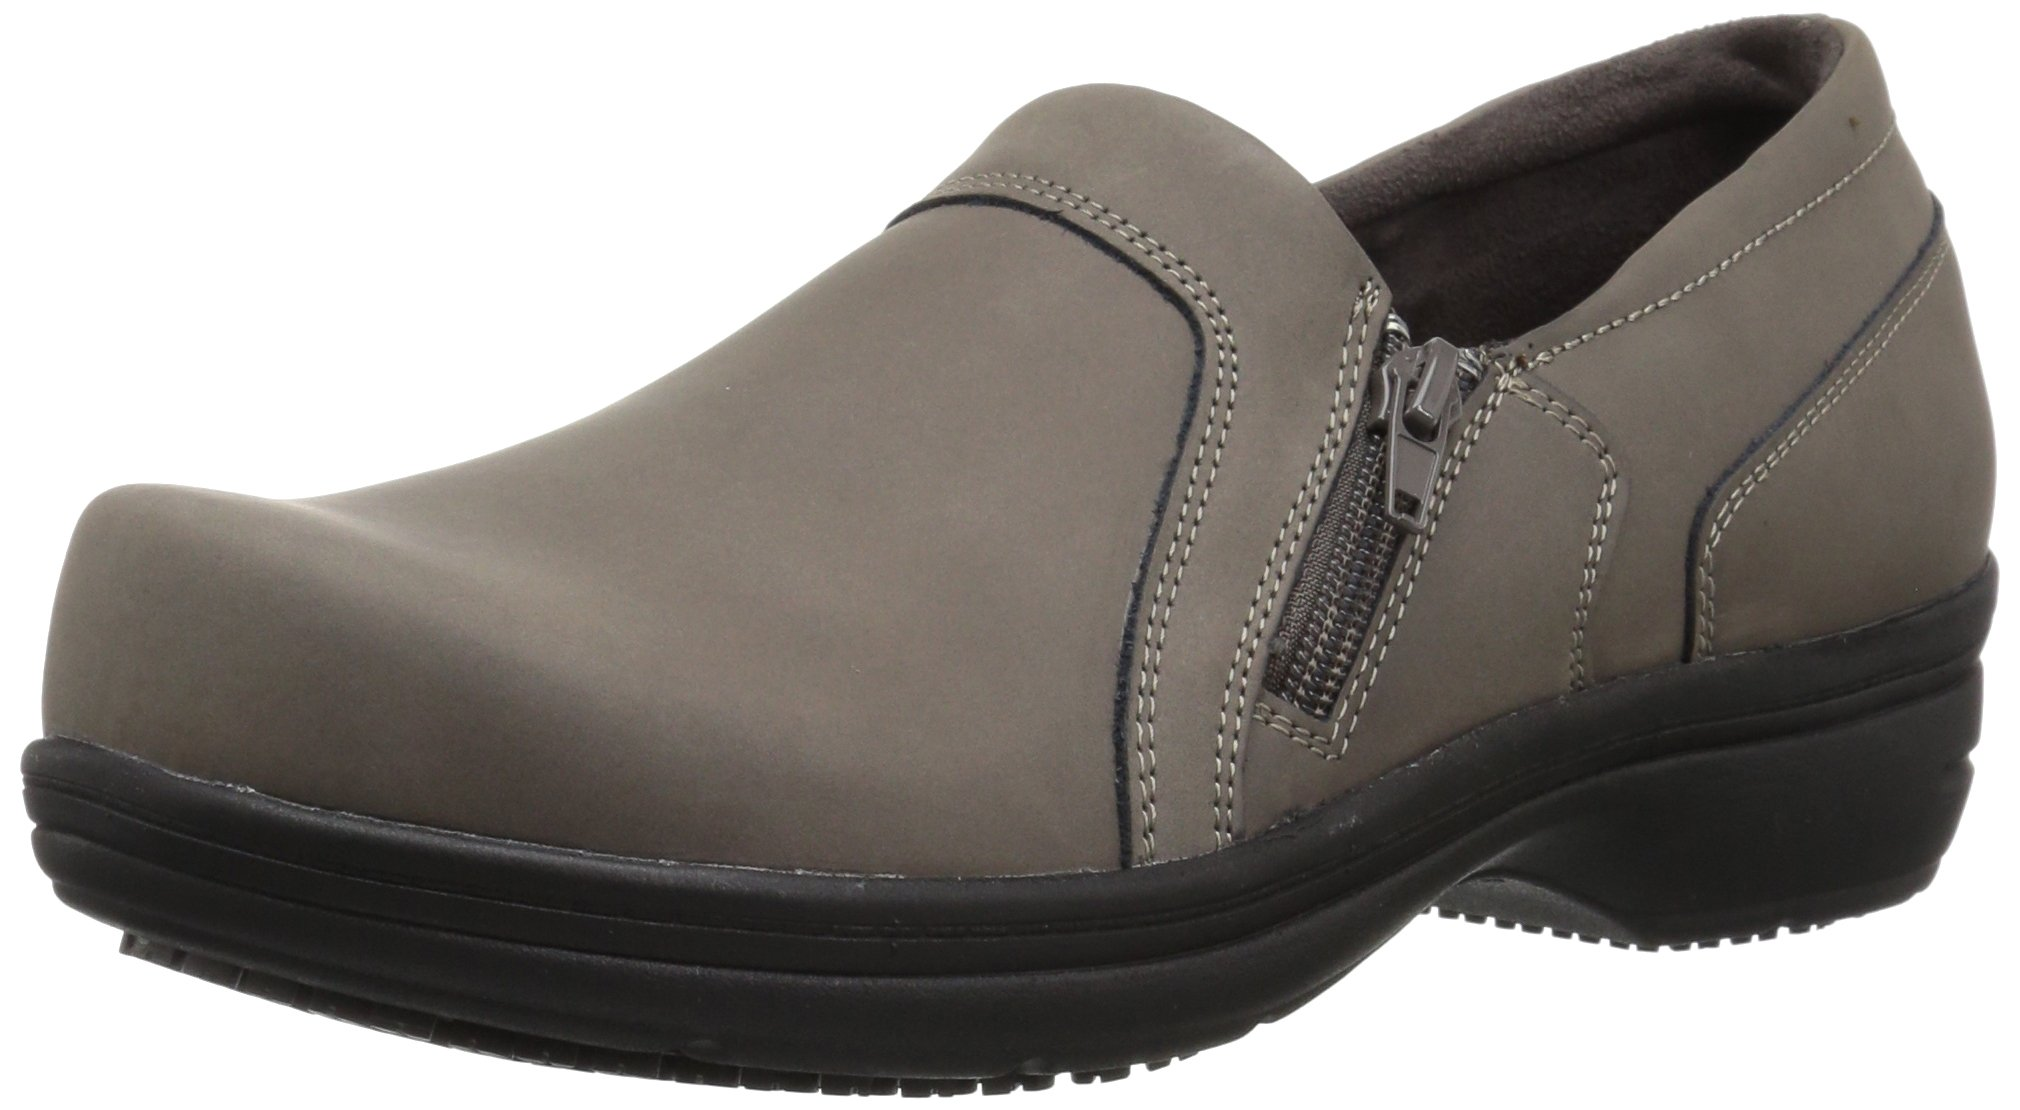 Easy Works Women's Bentley Health Care Professional Shoe, Grey Nubuck, 7.5 W US by Easy Works (Image #1)